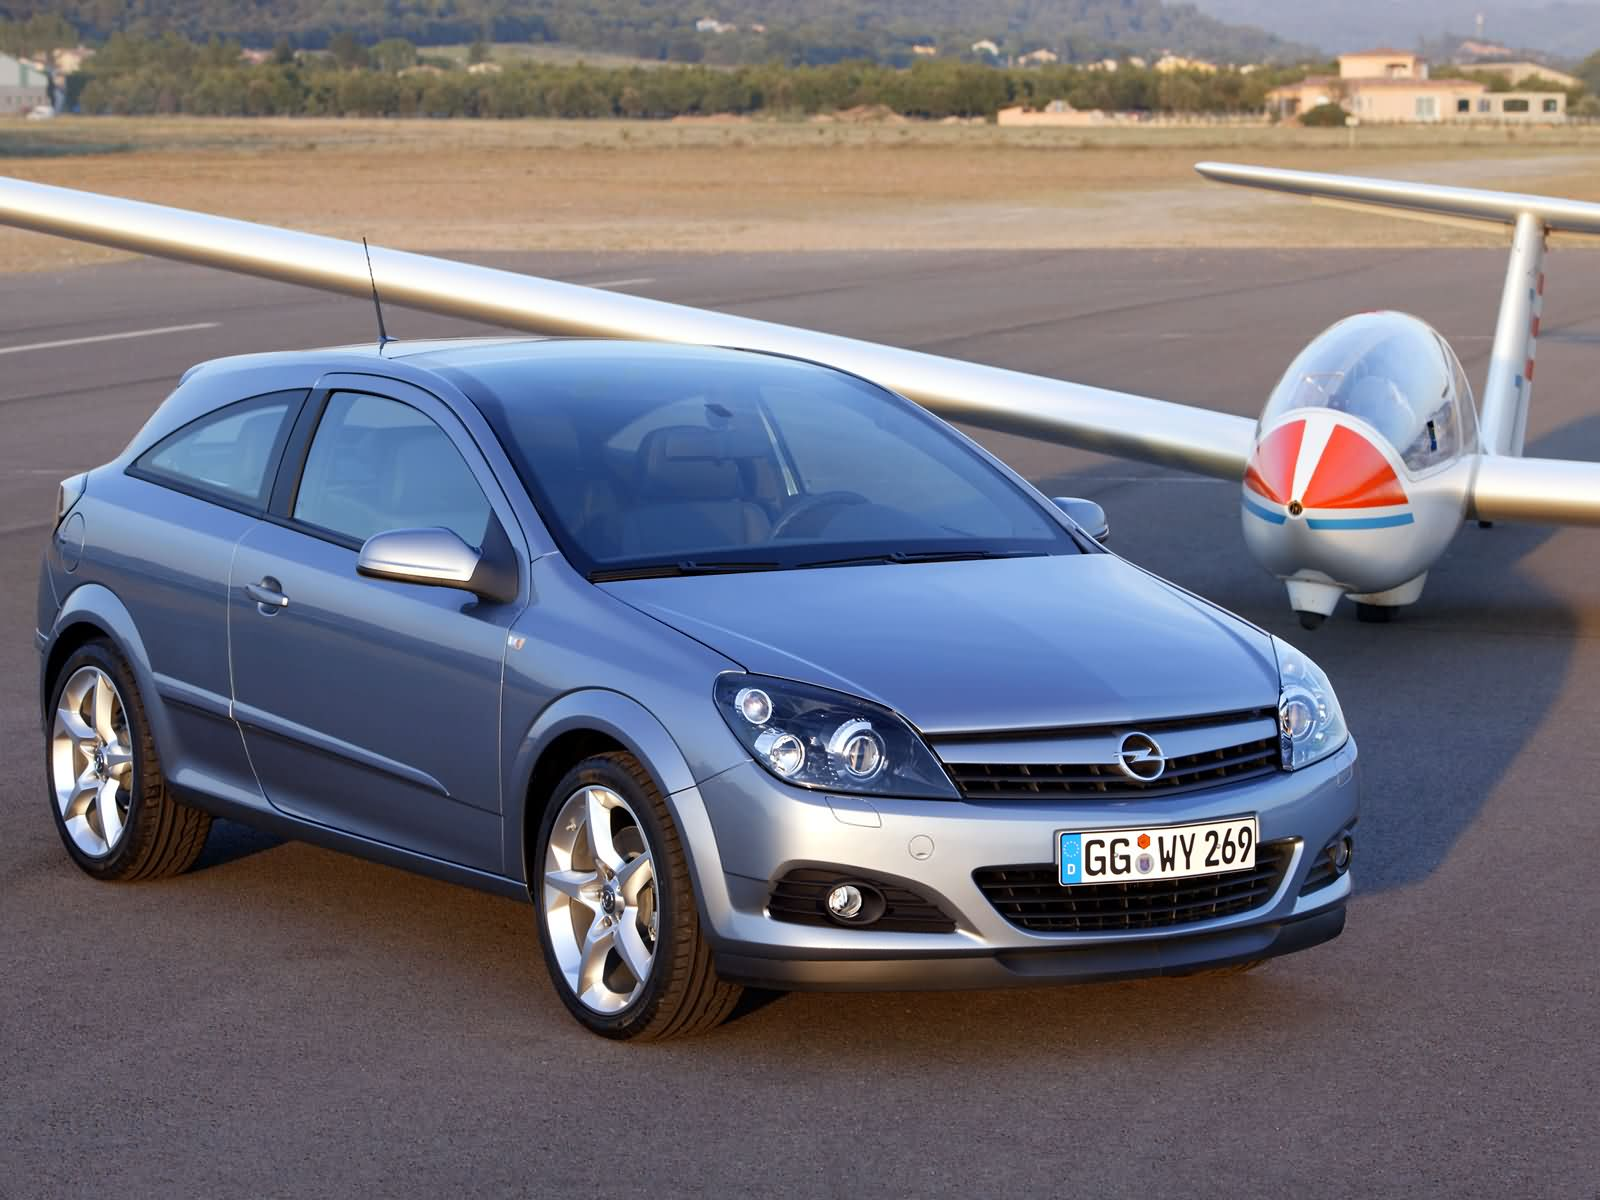 opel astra h gtc 2005 opel astra h gtc 2005 photo 05 car. Black Bedroom Furniture Sets. Home Design Ideas